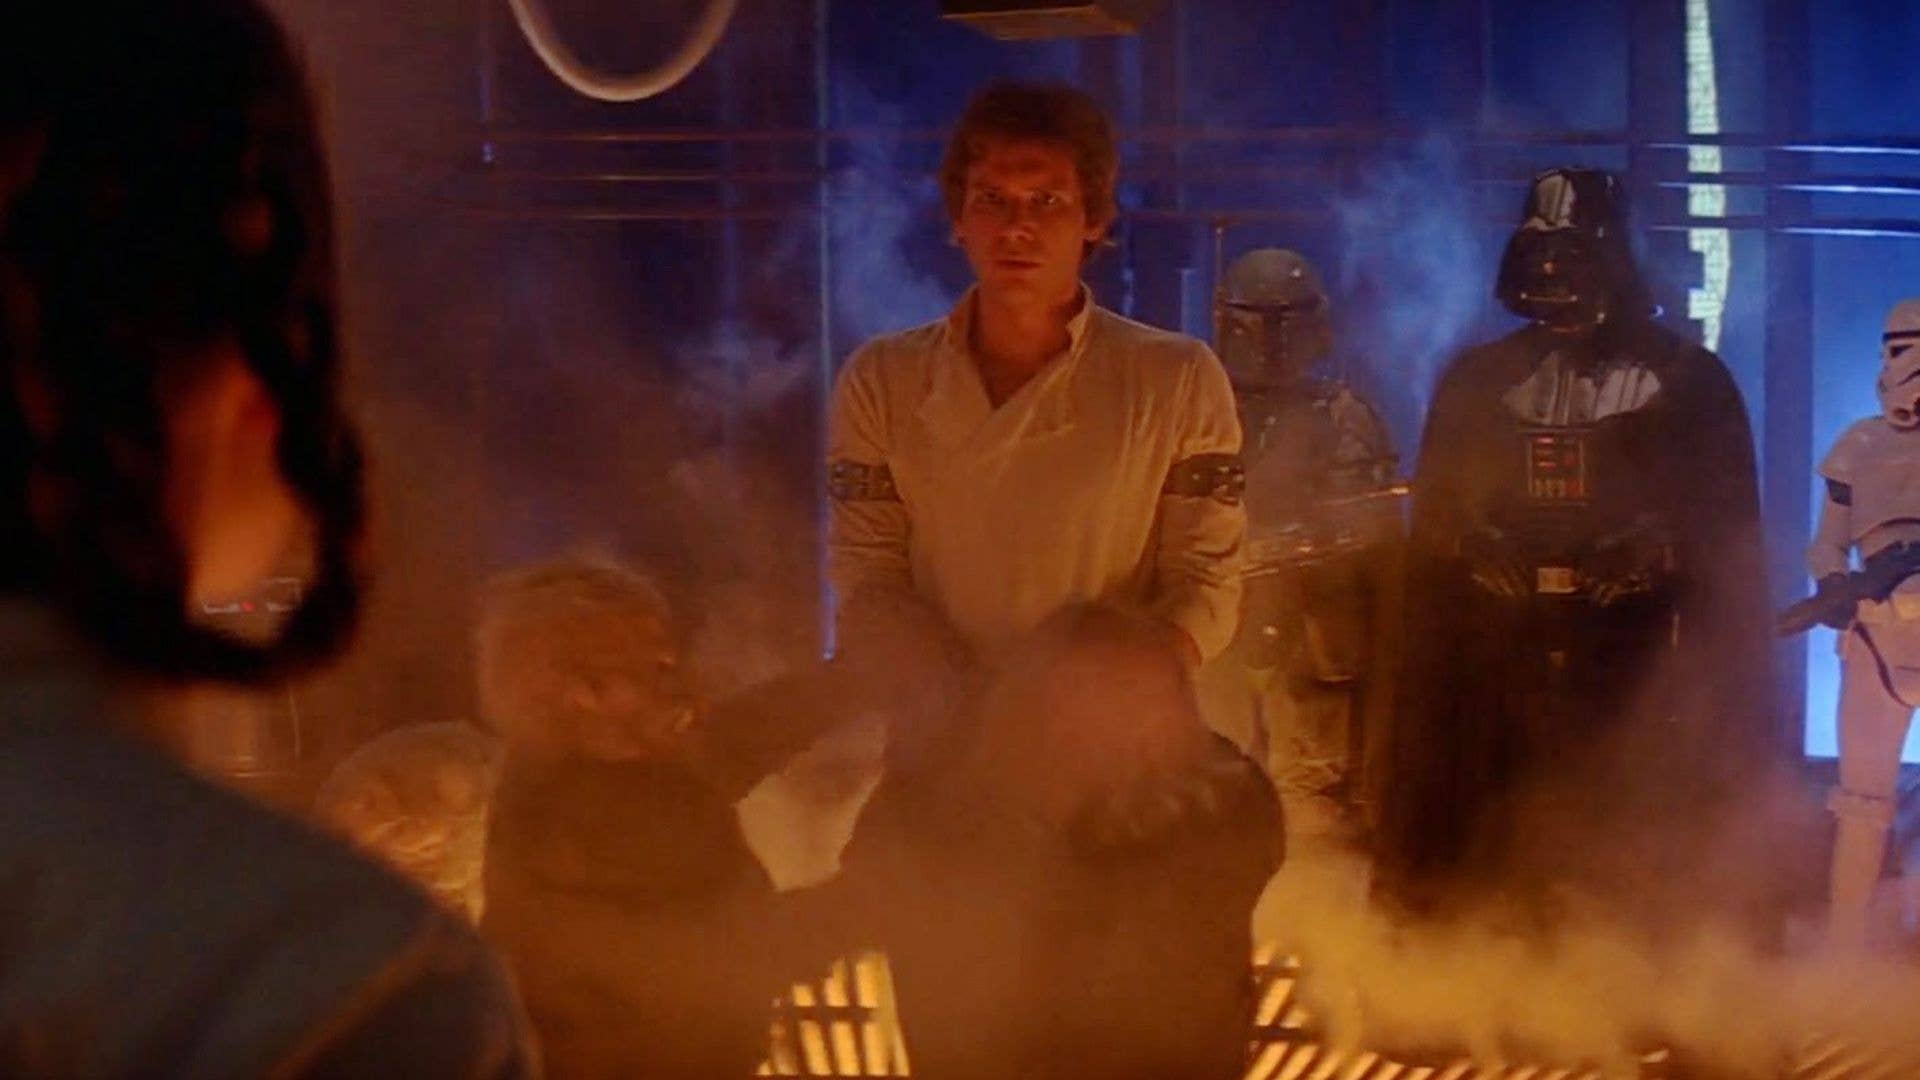 20b 20 Things You Didn't Know About The Empire Strikes Back